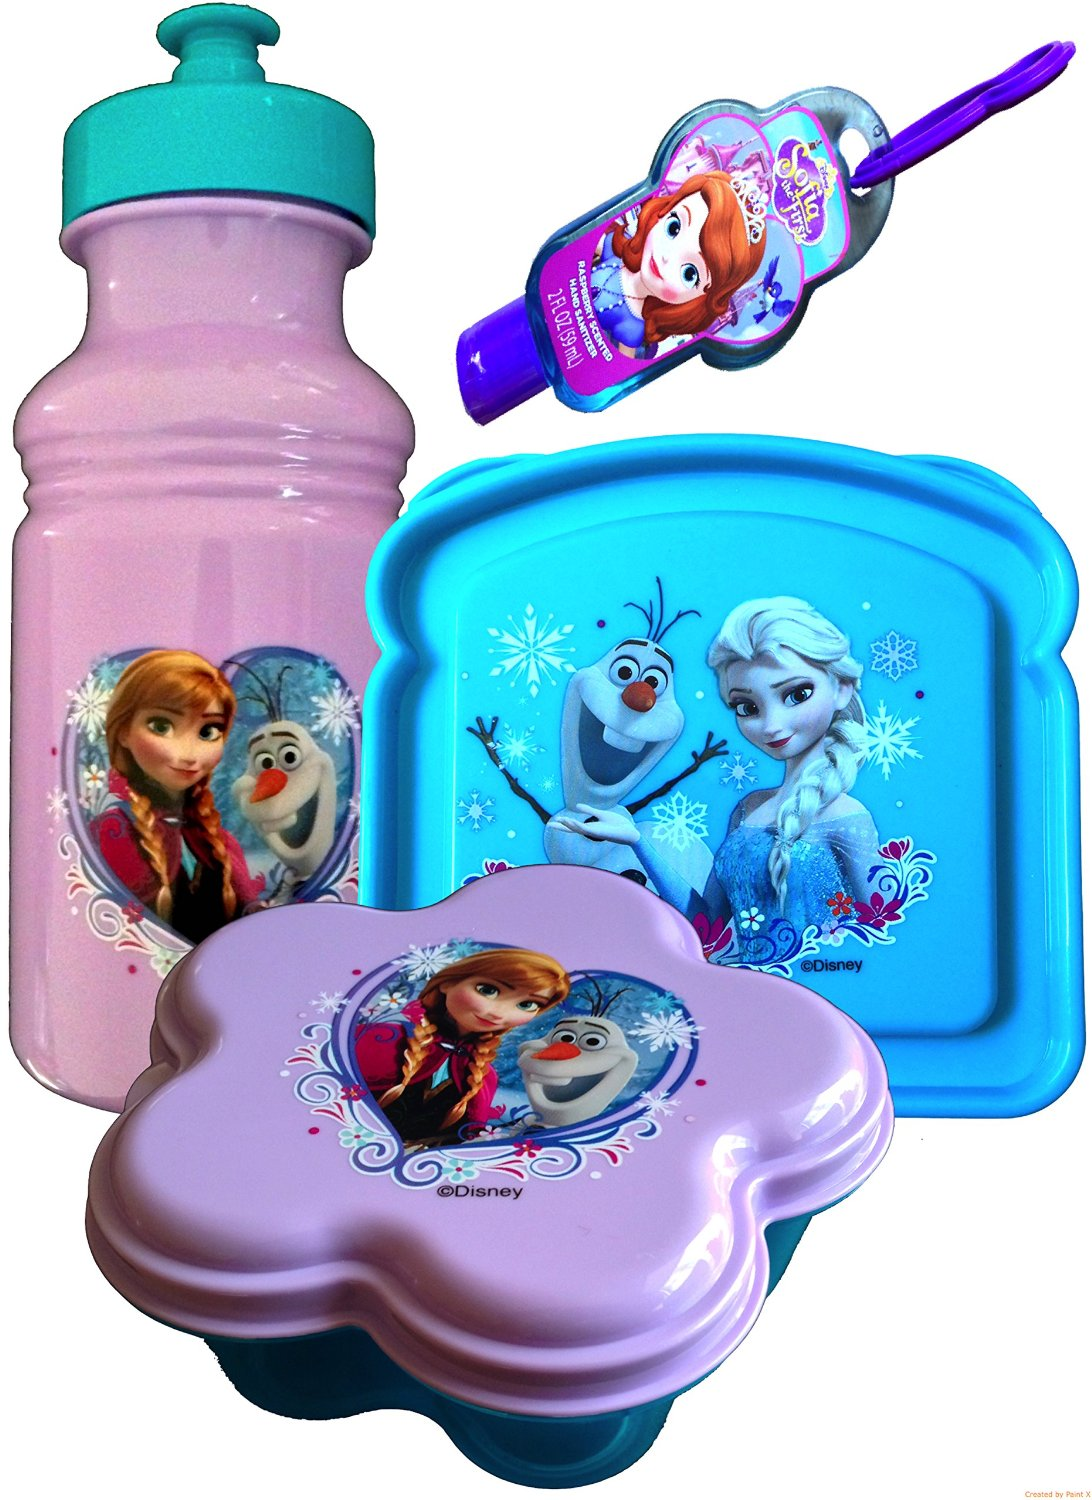 Disney Frozen Lunch Set with Standing Lunch Box with Handle Includes 3 Piece Lunch Set , Pull-top Water Bottle, Snack Container , Sandwich Container and Bonus Sofia the First Hand Sanitizer (3 Piece Lunch SET Only)